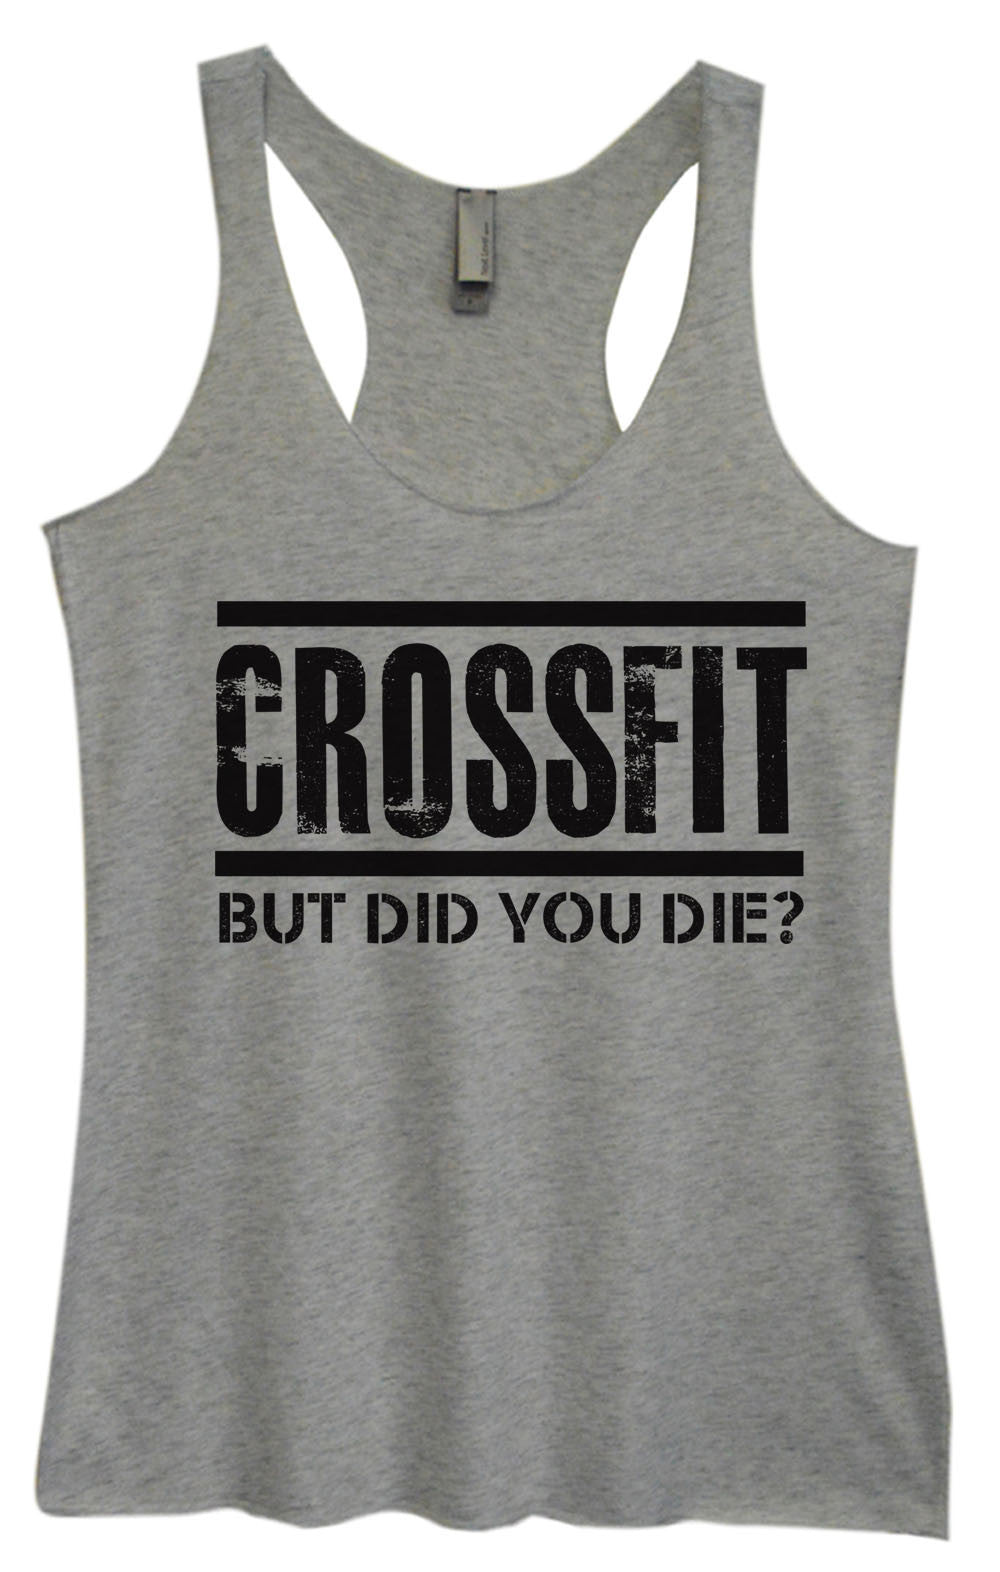 Womens Fashion Triblend Tank Top - Crossfit But Did You Die? - Tri-648 - Funny Shirts Tank Tops Burnouts and Triblends  - 1